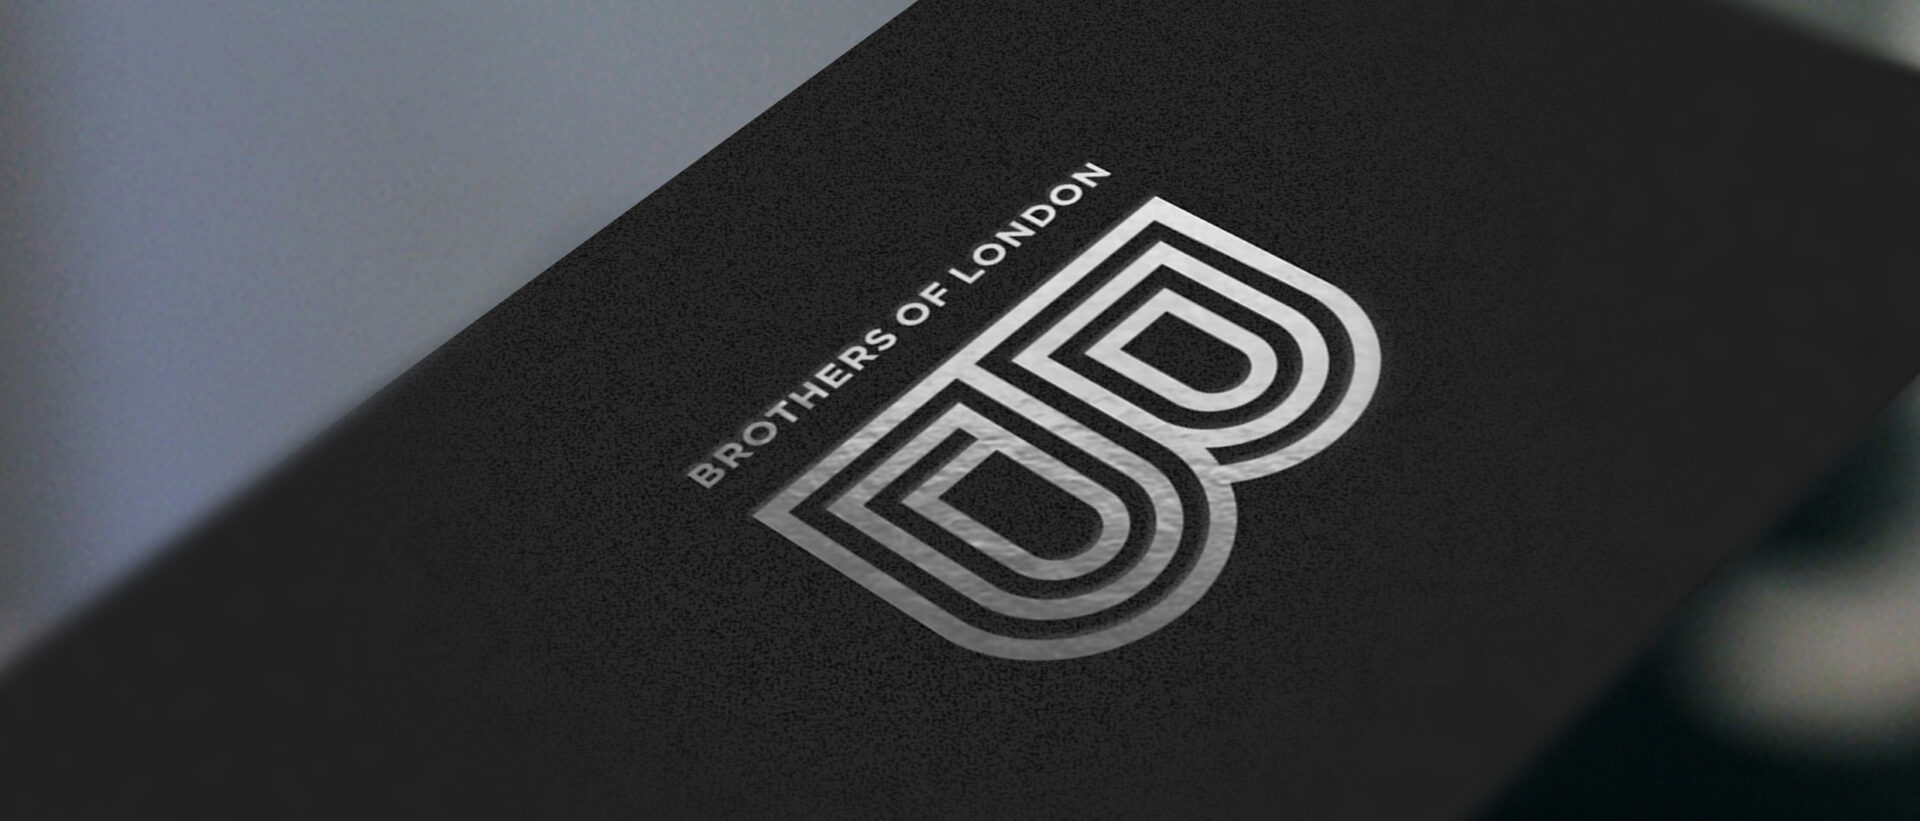 Brothers of London – Branding